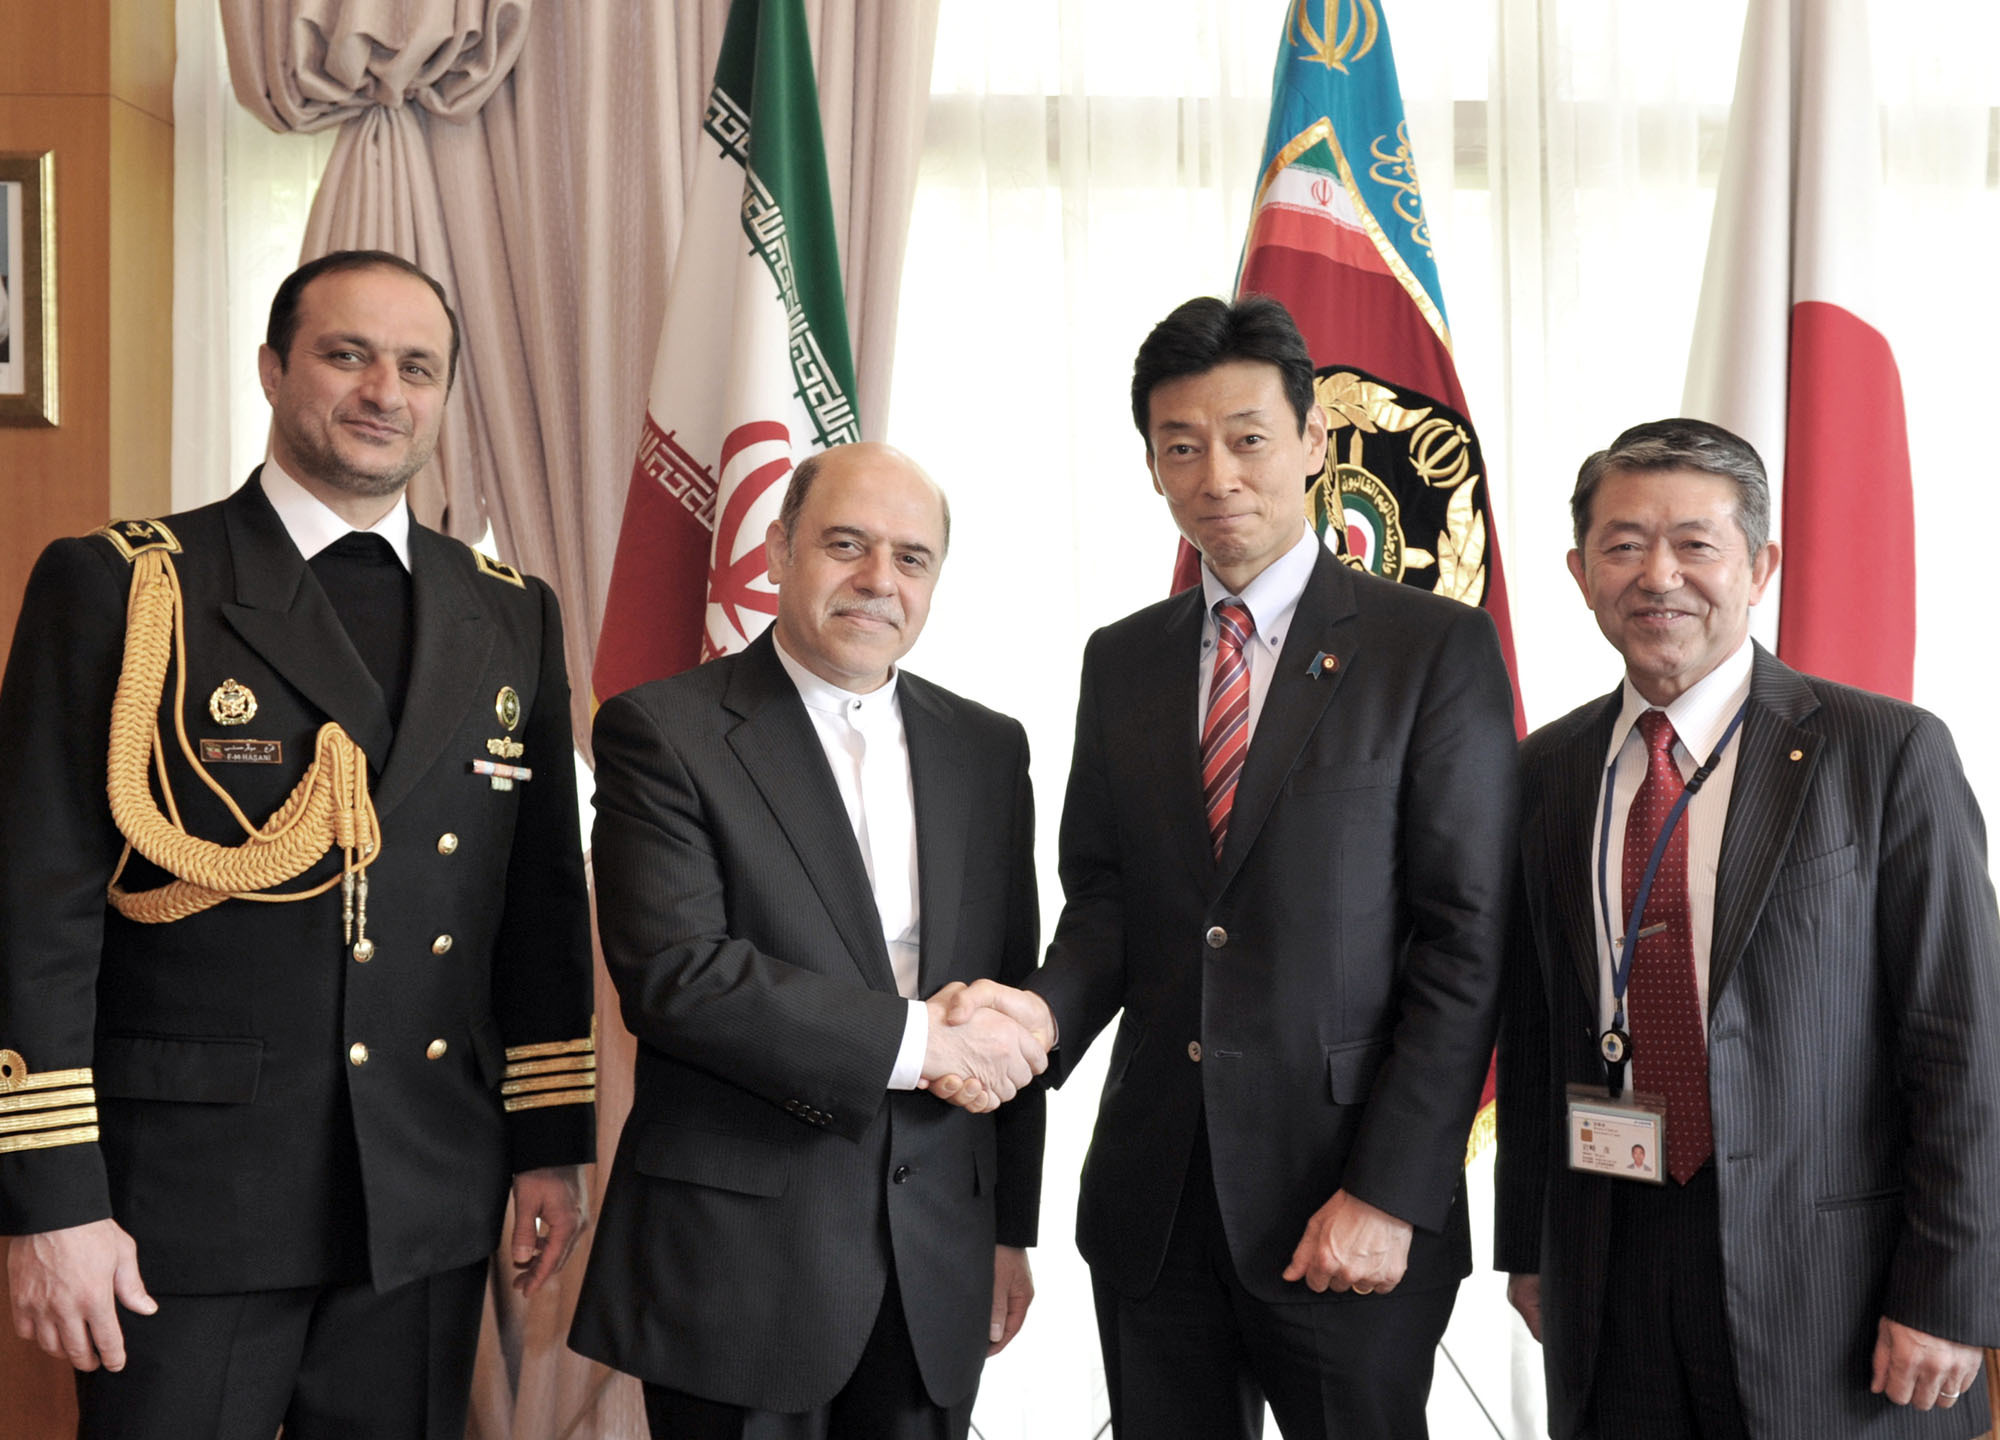 """Iranian Ambassador Reza Nazarahari (second from left) shakes hands with Lower House member Yasutoshi Nishimura. They are flanked by Iranian Military Attache to Japan Capt. Farrokh Movaghar Hassani (left) and Special Adviser to the Minister of Defense Shigeru Iwasaki during a reception to celebrate """"Iran's Armed Forces Day"""" at the embassy in Tokyo on April 15. 